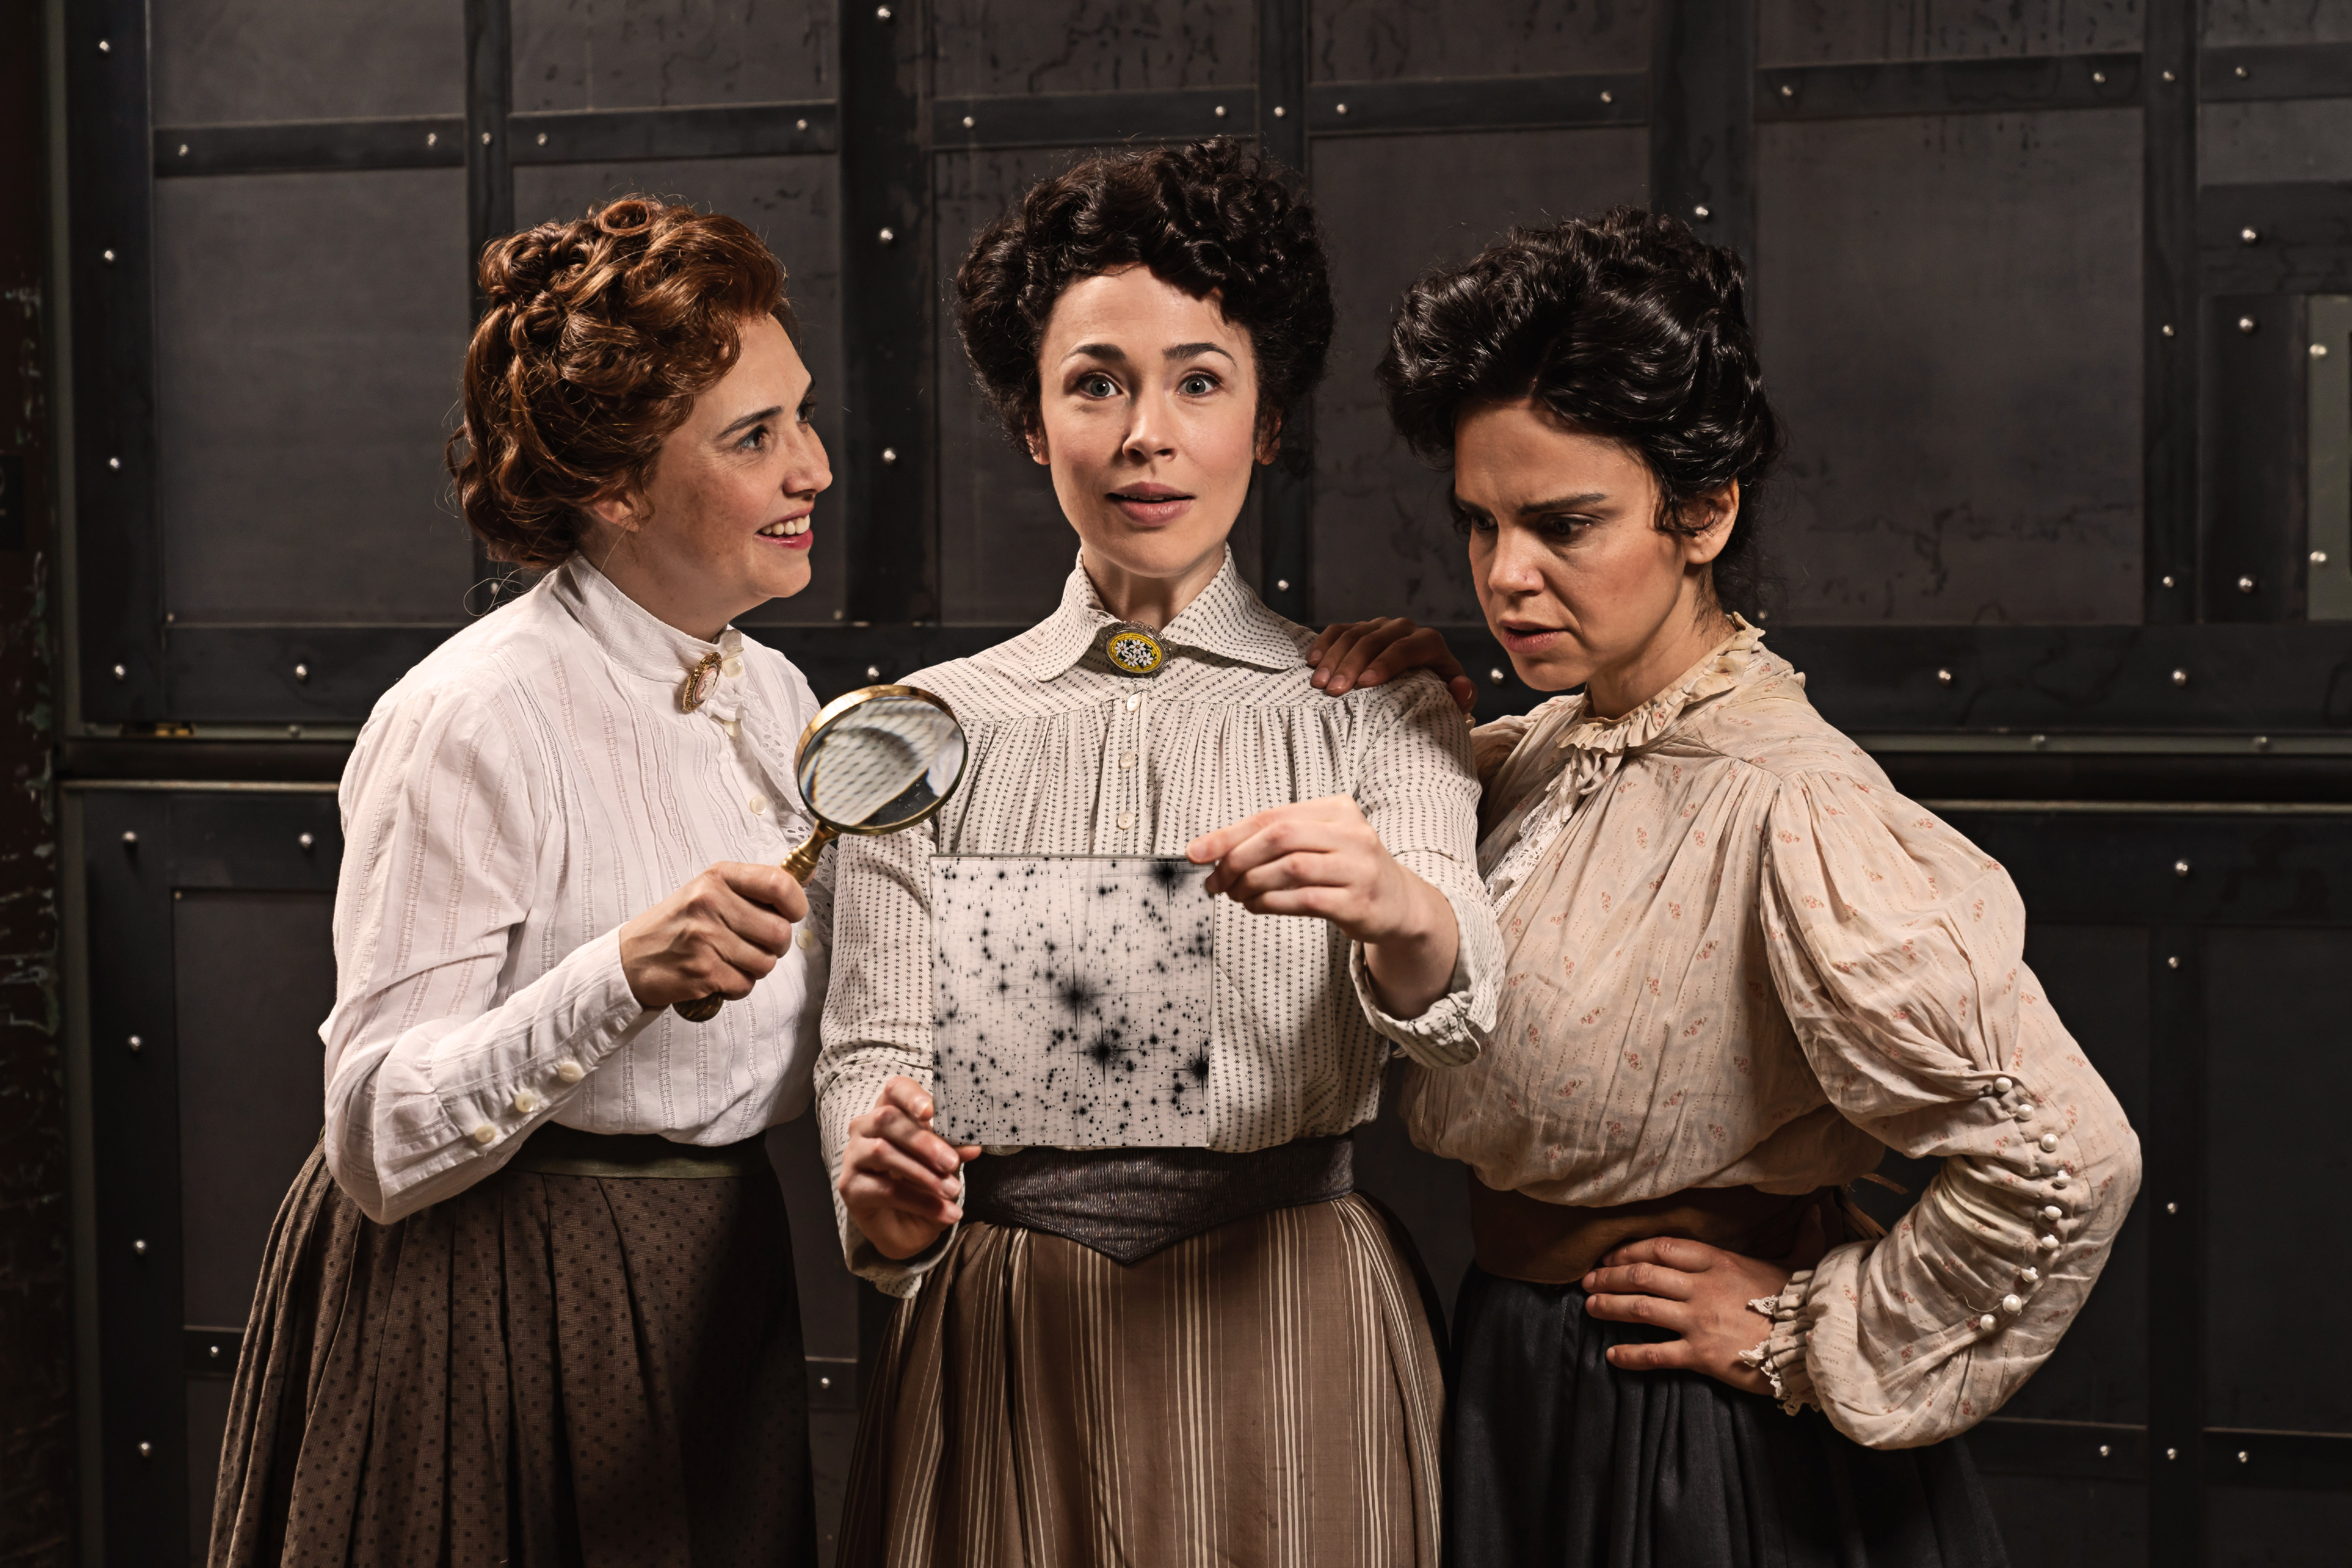 Three actresses wearing Victorian blouses and high-waisted skirts stand together. The woman in the middle holds a glass plate with a photograph of the night sky and has an expression of discovery on her face. The woman on the left holds a magnifying glass and smiles as she looks at the woman in the middle. The woman on the right stares at the details on the glass plate.